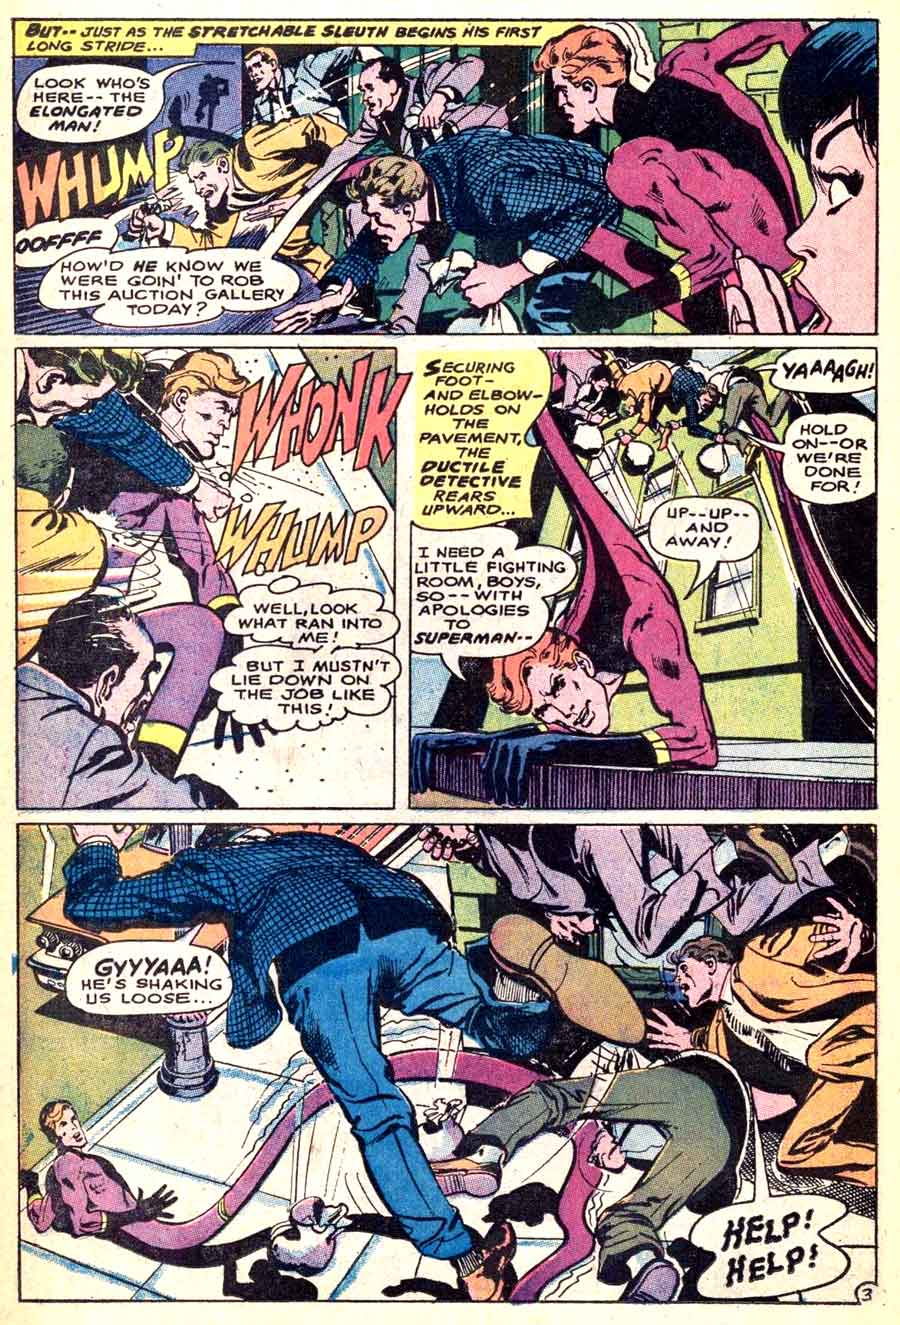 Detective Comics #369 dc silver age comic book page art by Neal Adams